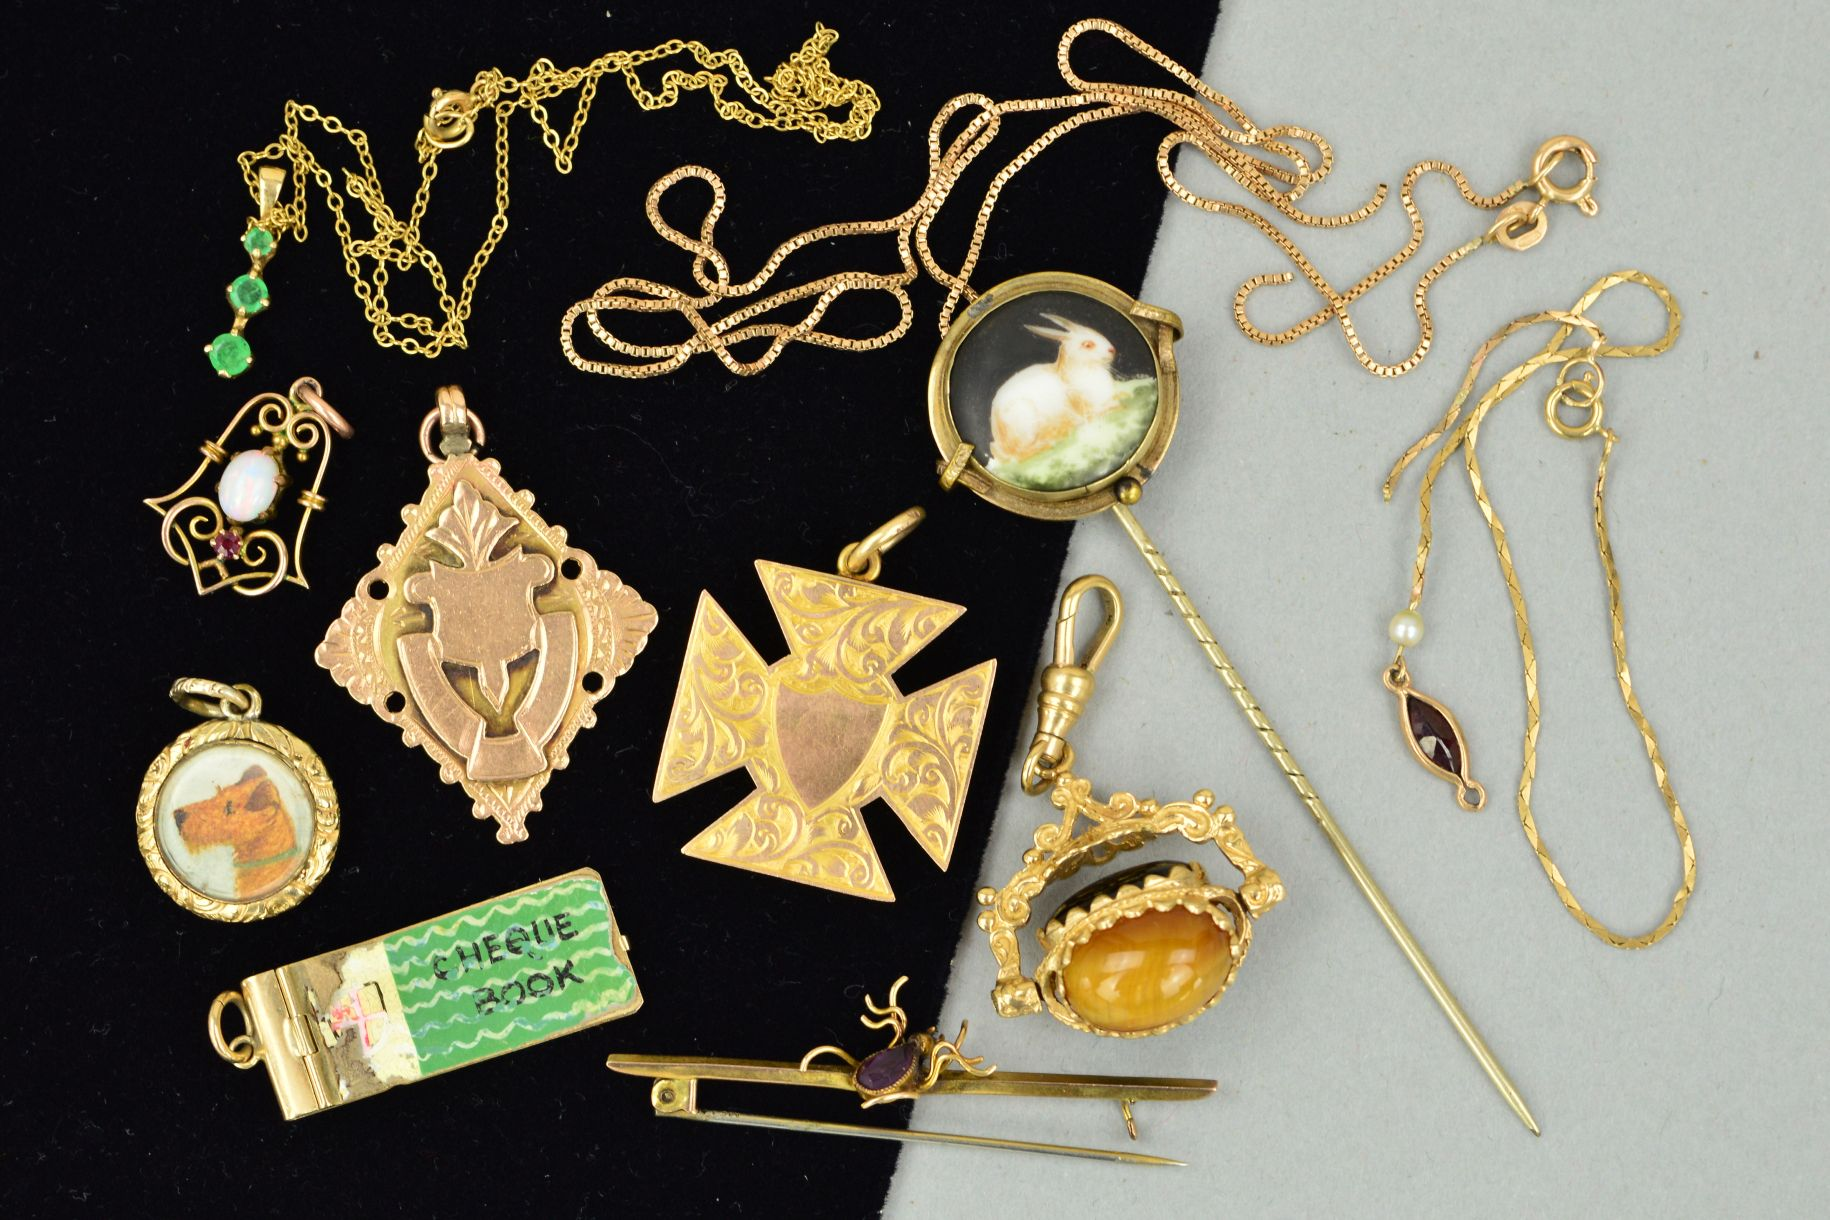 Lot 55 - A MISCELLANEOUS JEWELLERY COLLECTION to include a 9ct gold Maltese cross pendant, a modern 9ct